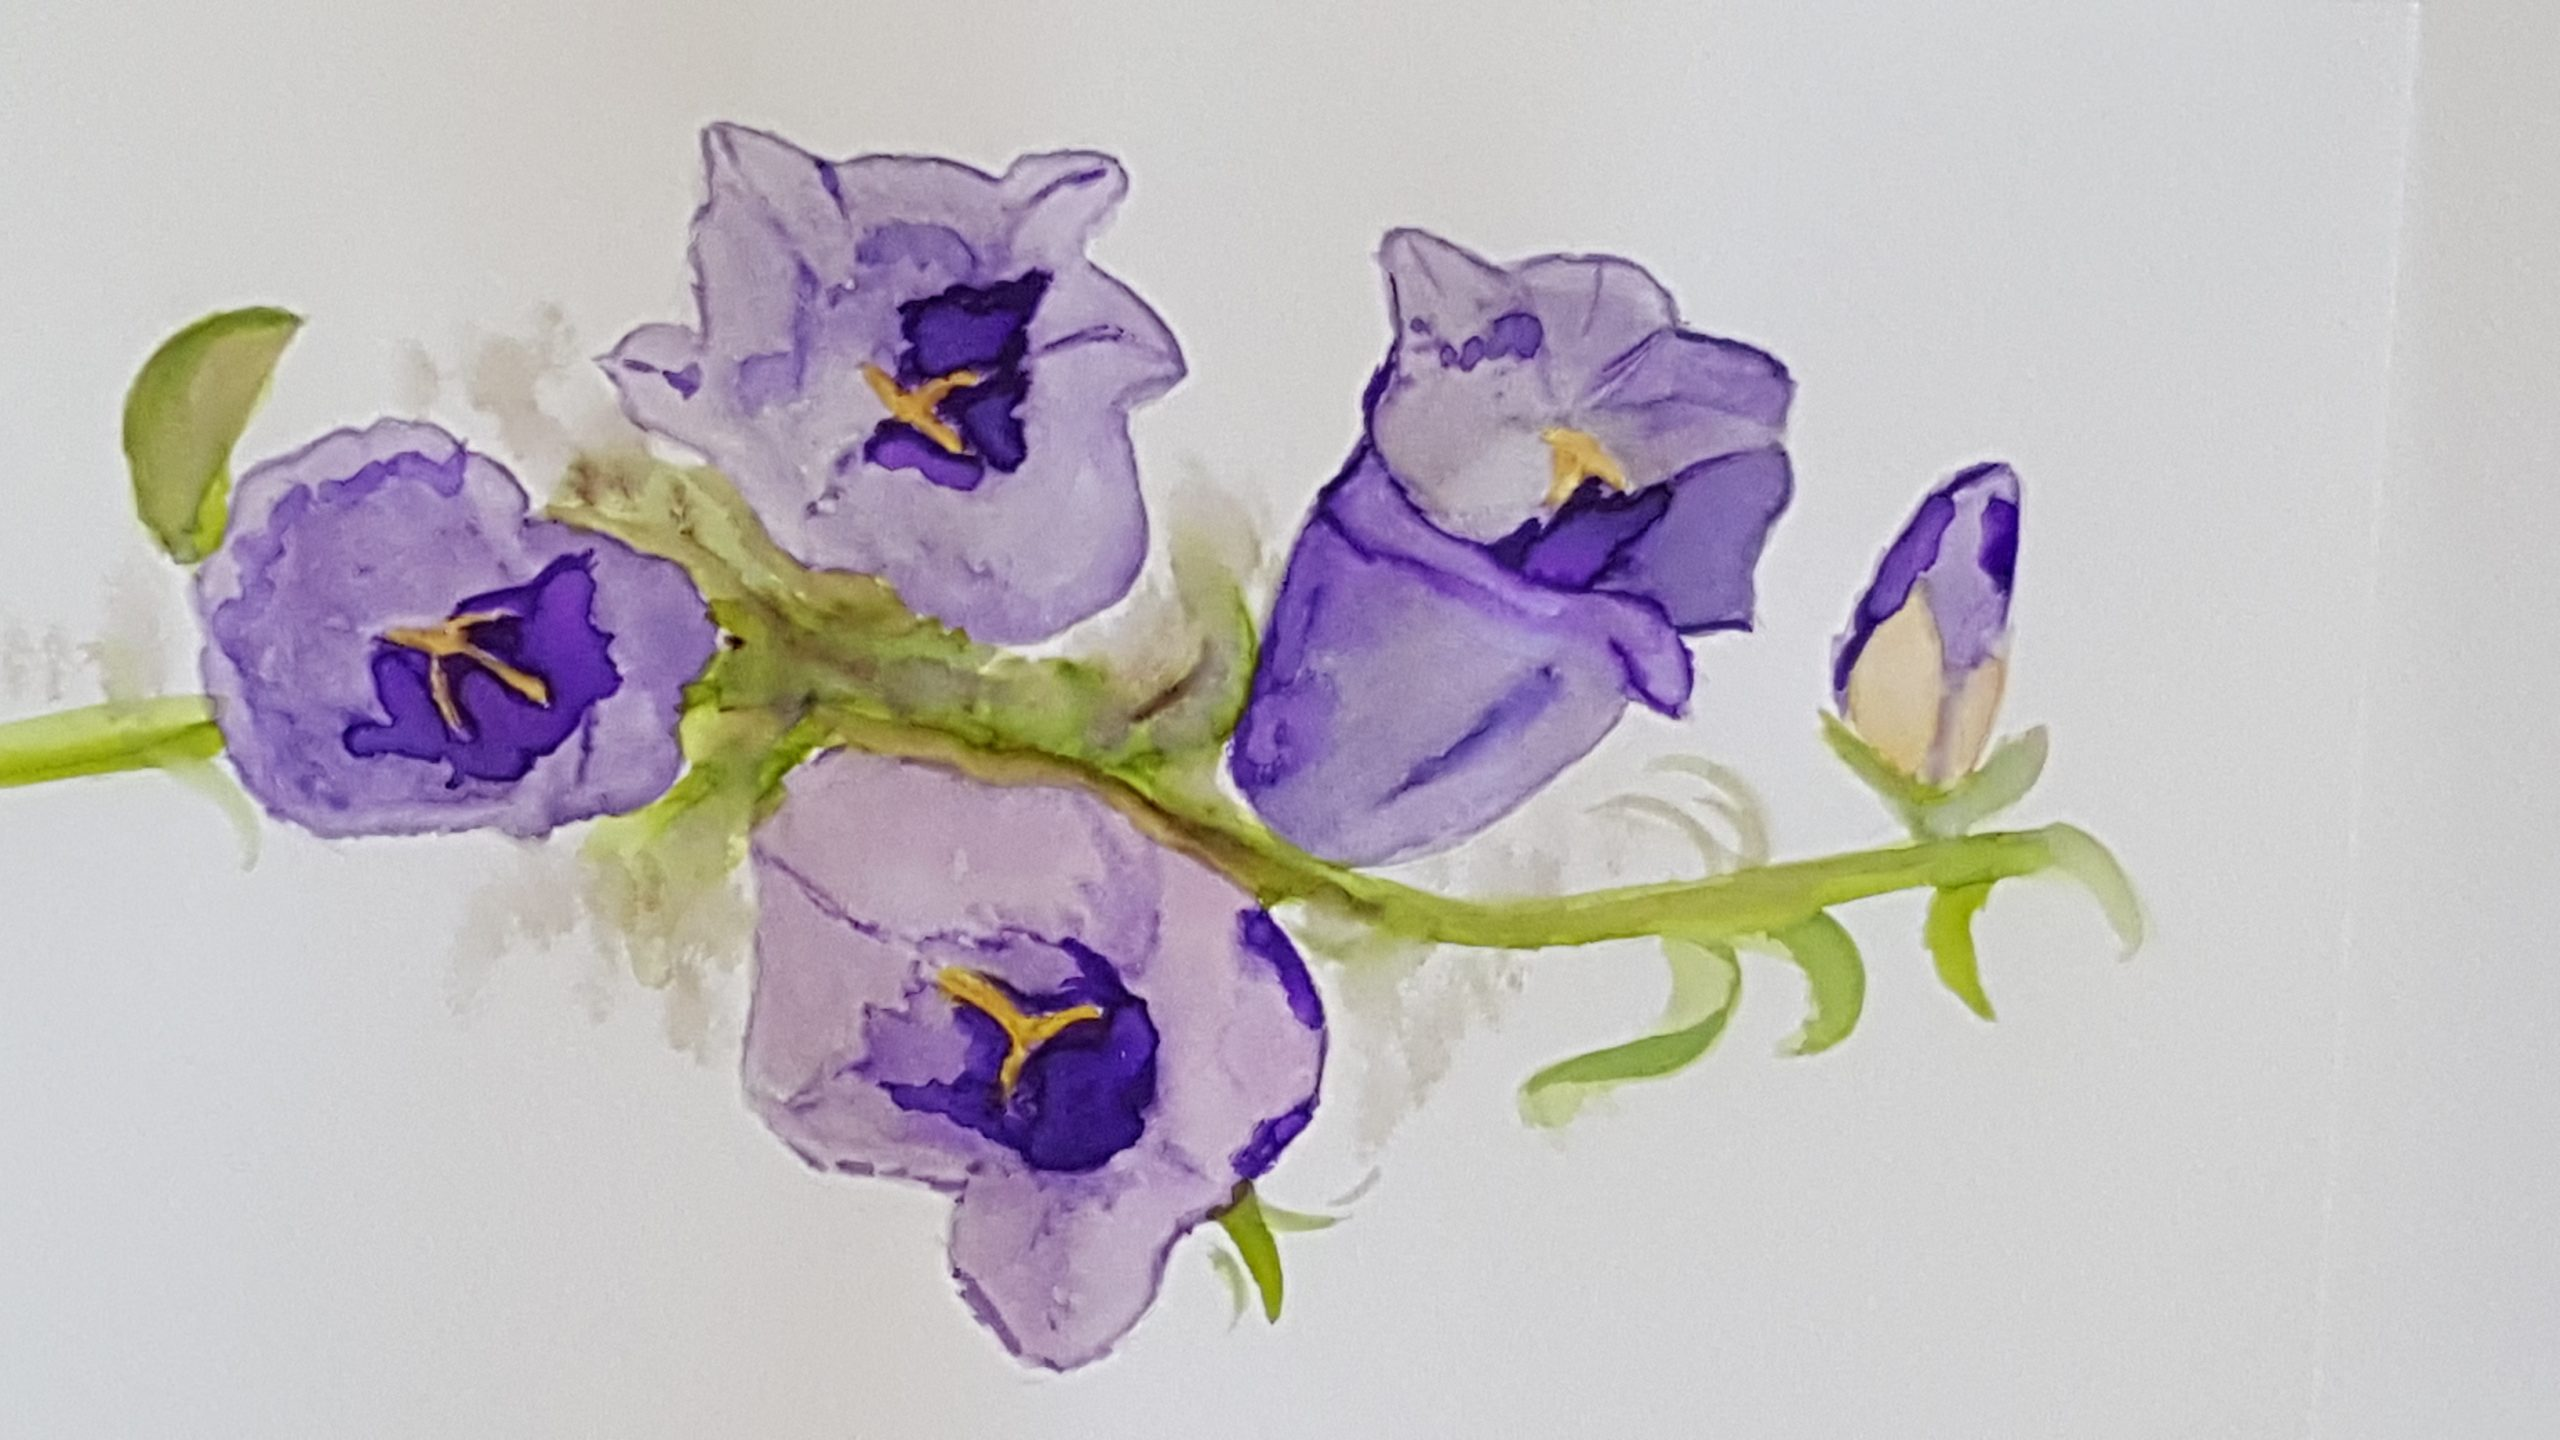 a watercolour drawing of purple violets.